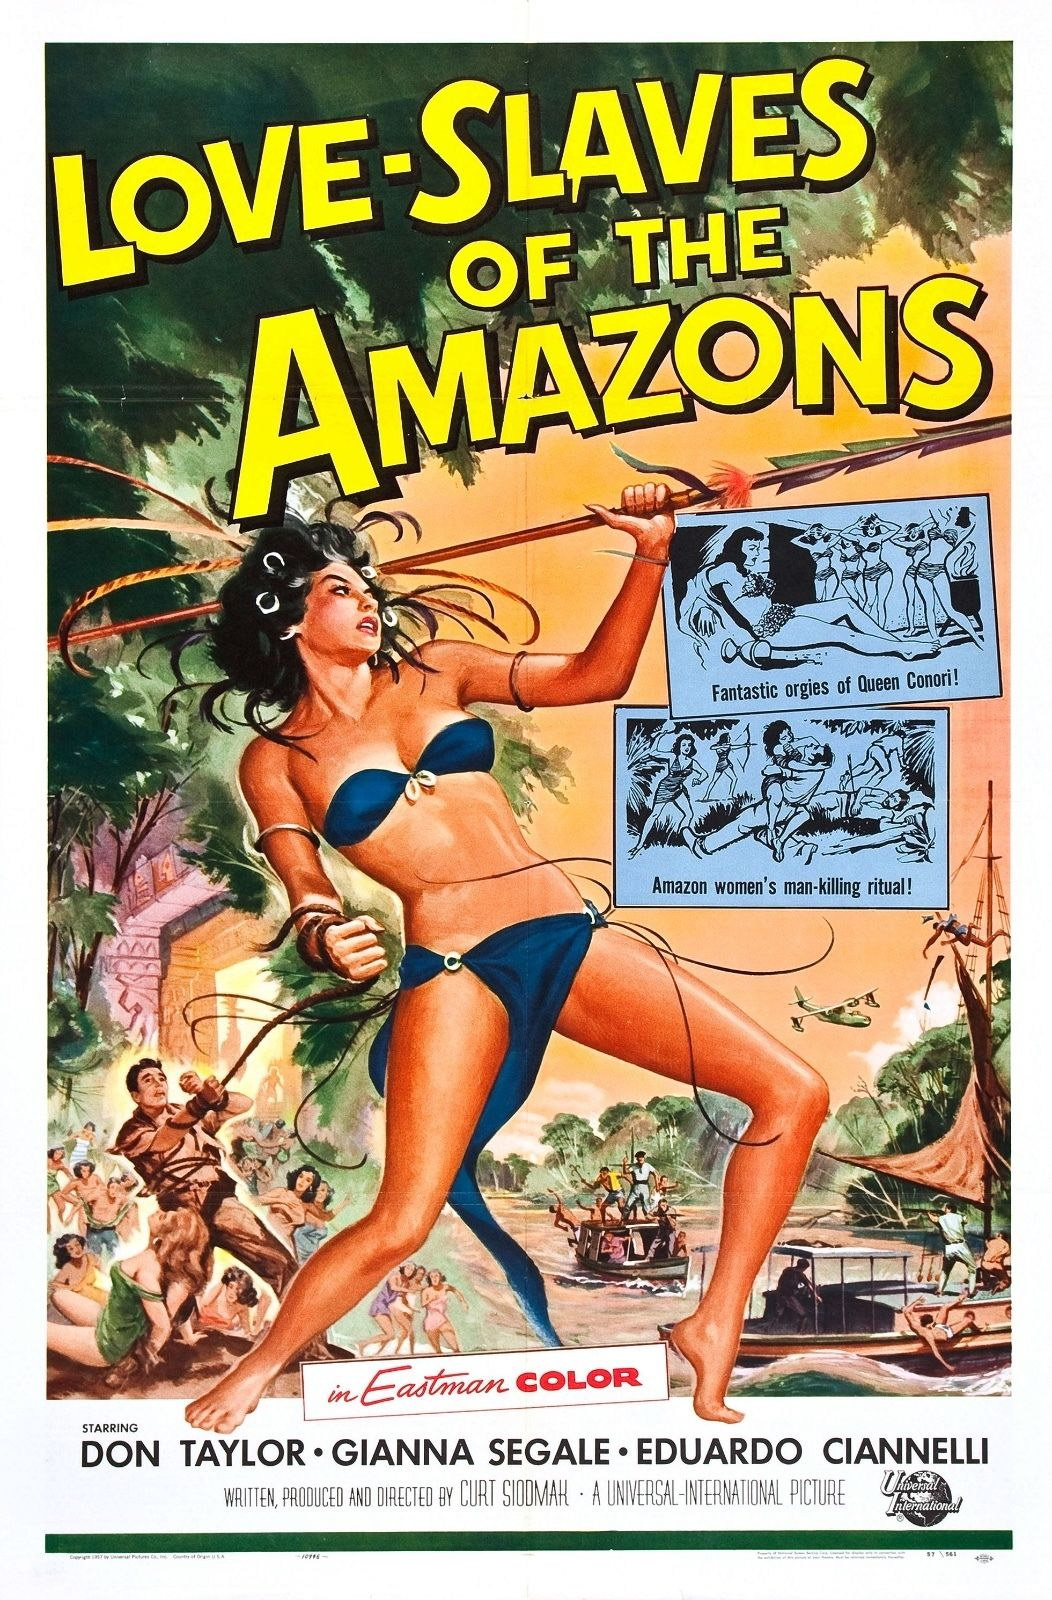 73534 Love Slaves of the Amazons 1957 Adventure Decor Wall P